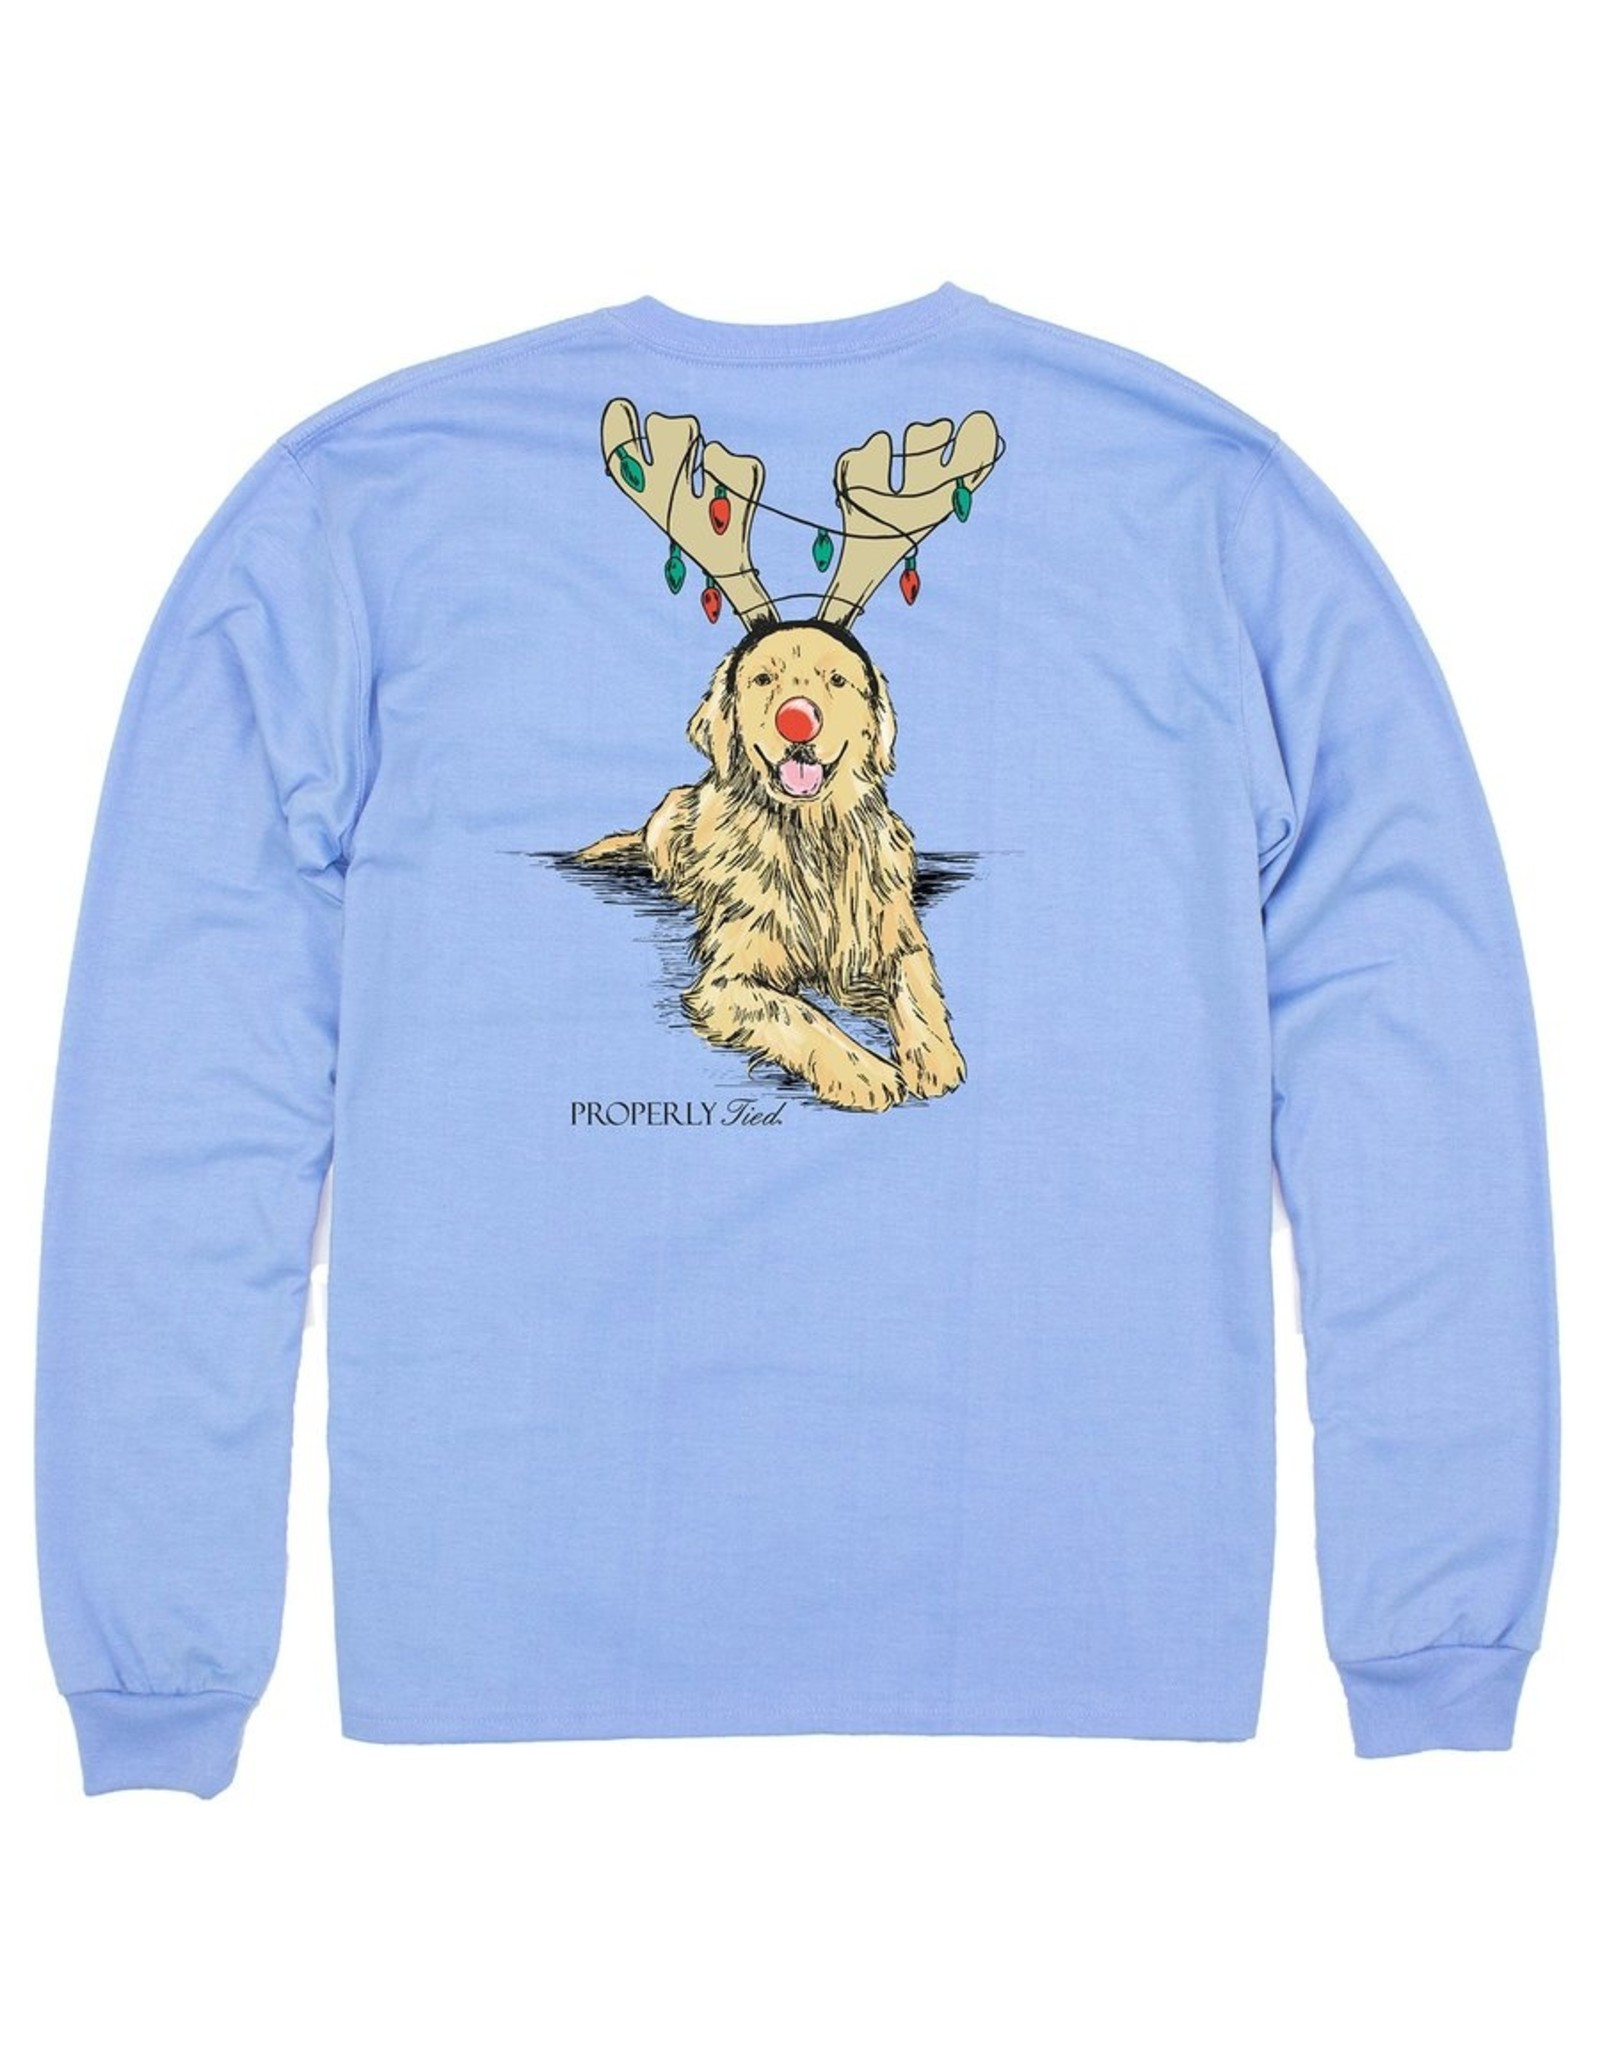 Properly Tied Baby Tee LS Golden Holiday Lt Blue